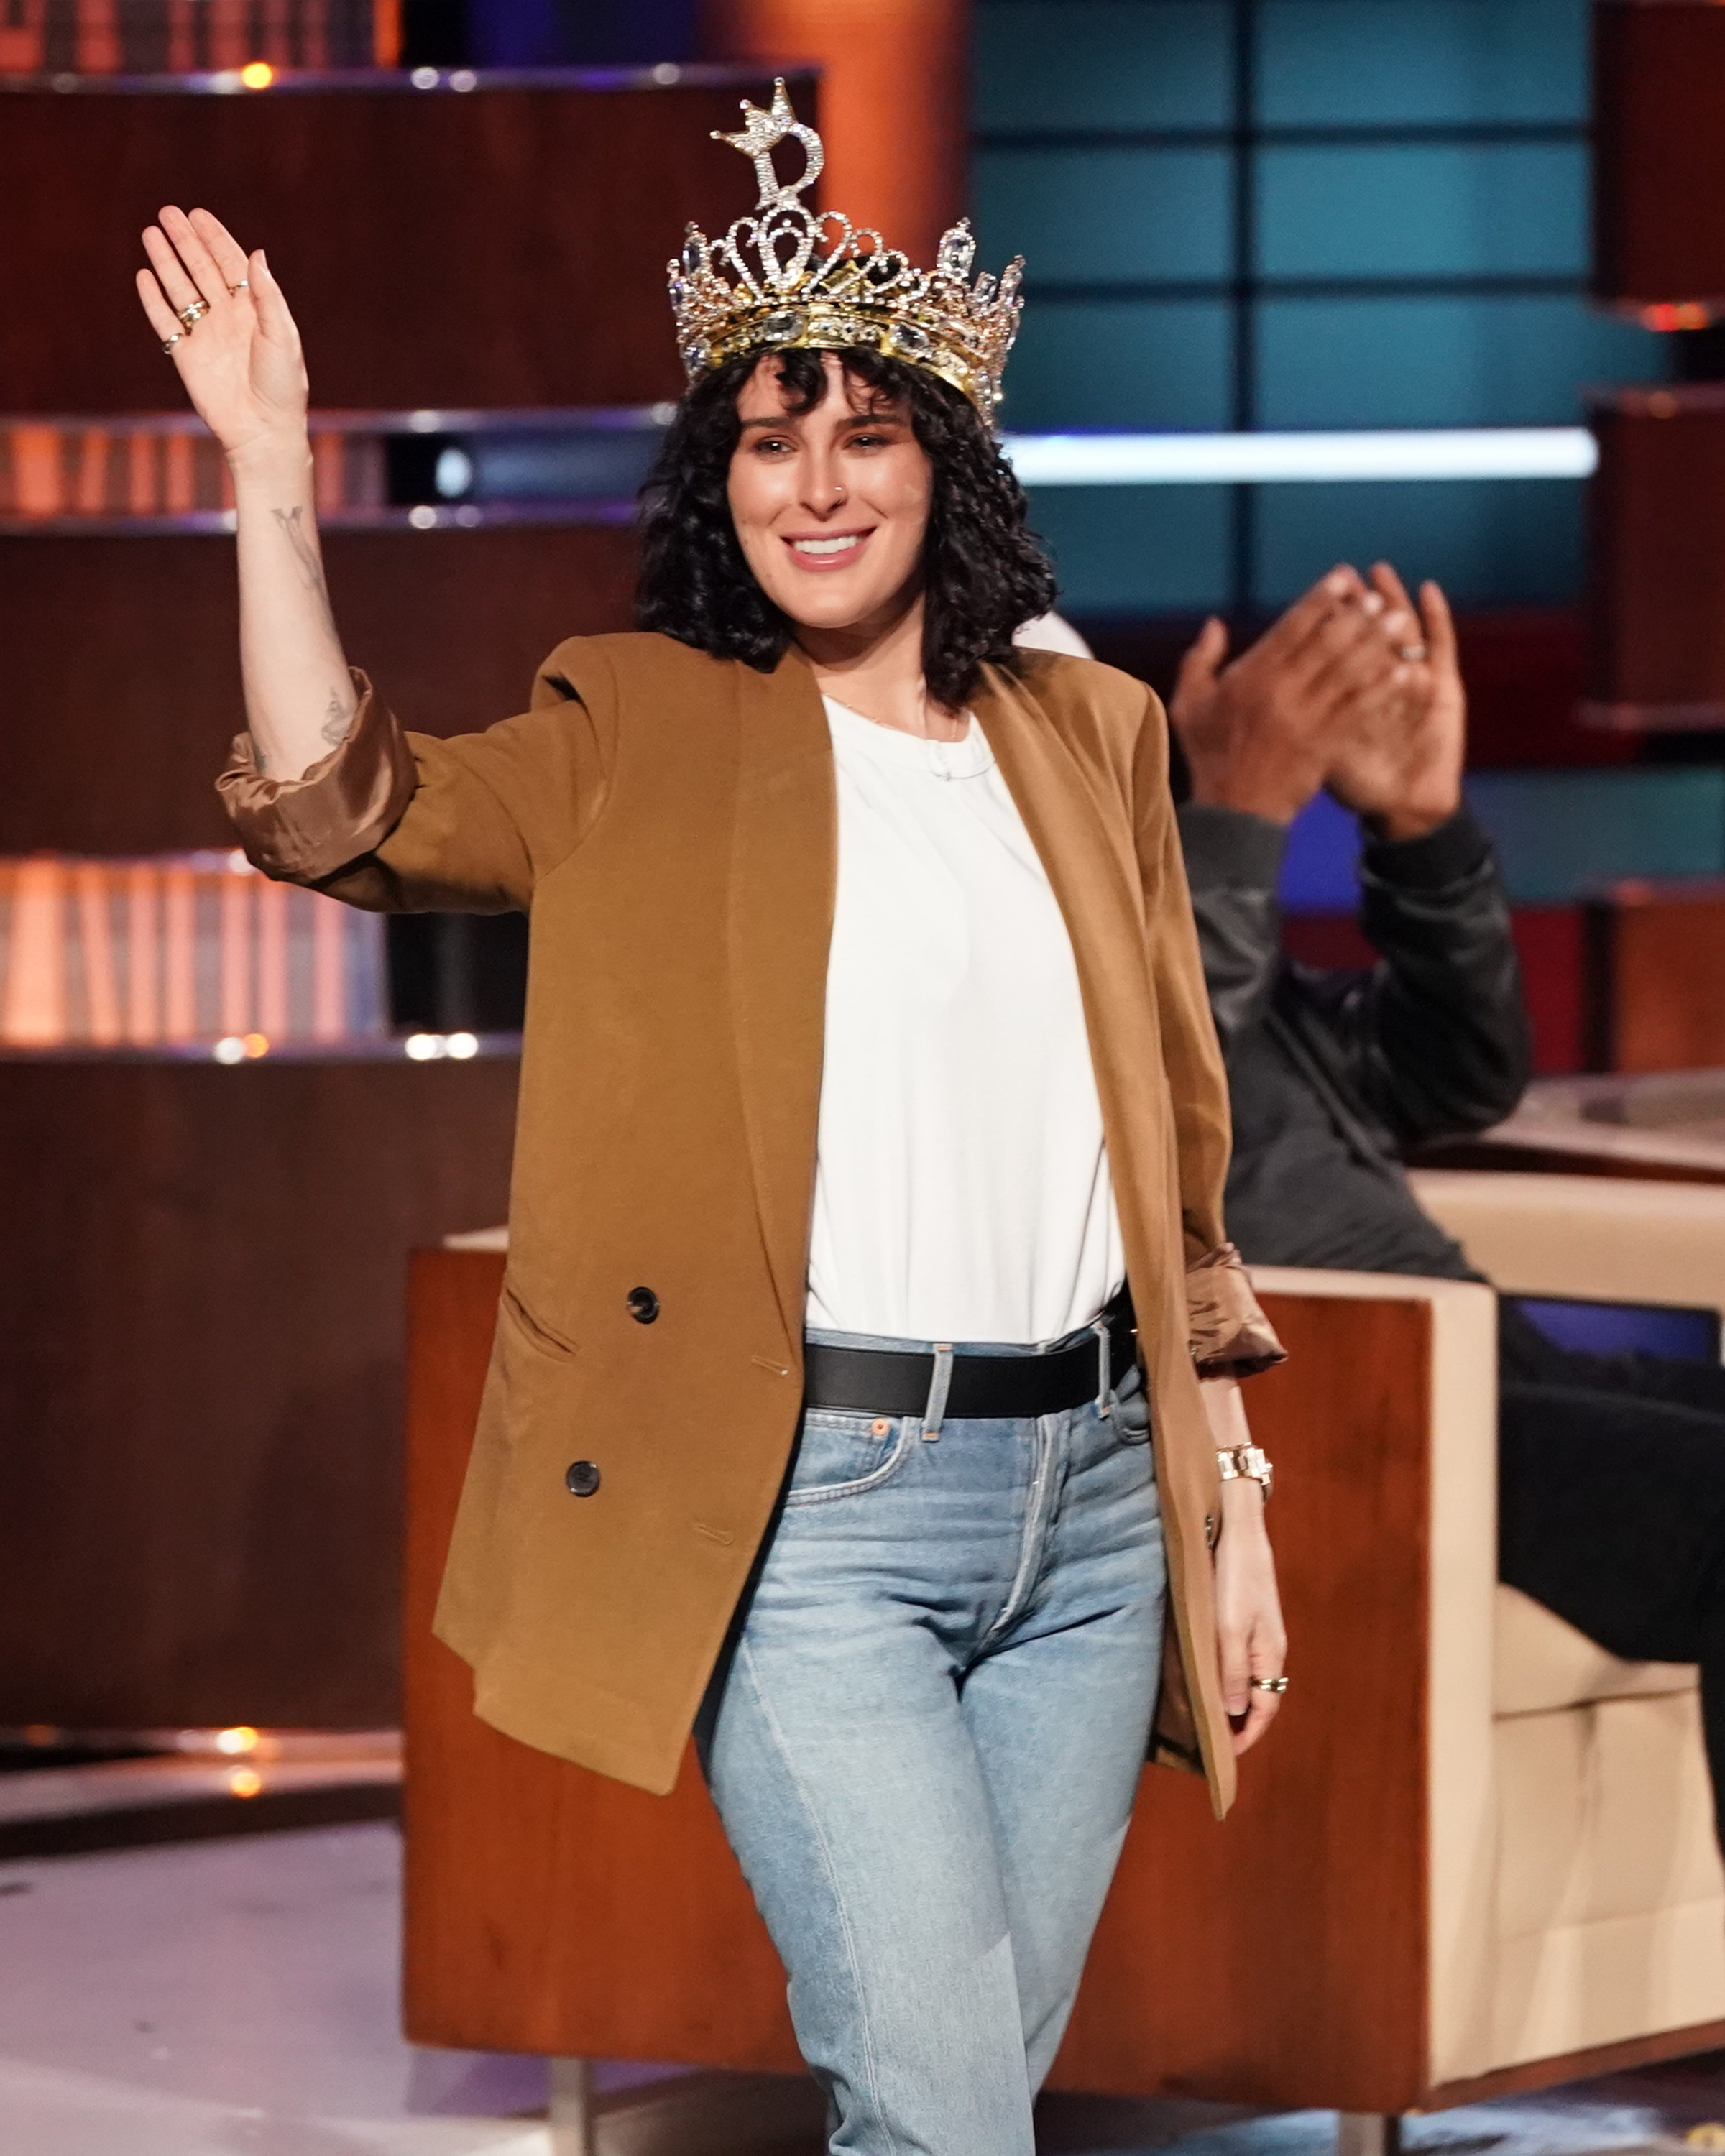 Rumer wearing a crown, tan jacket, and jeans and waving